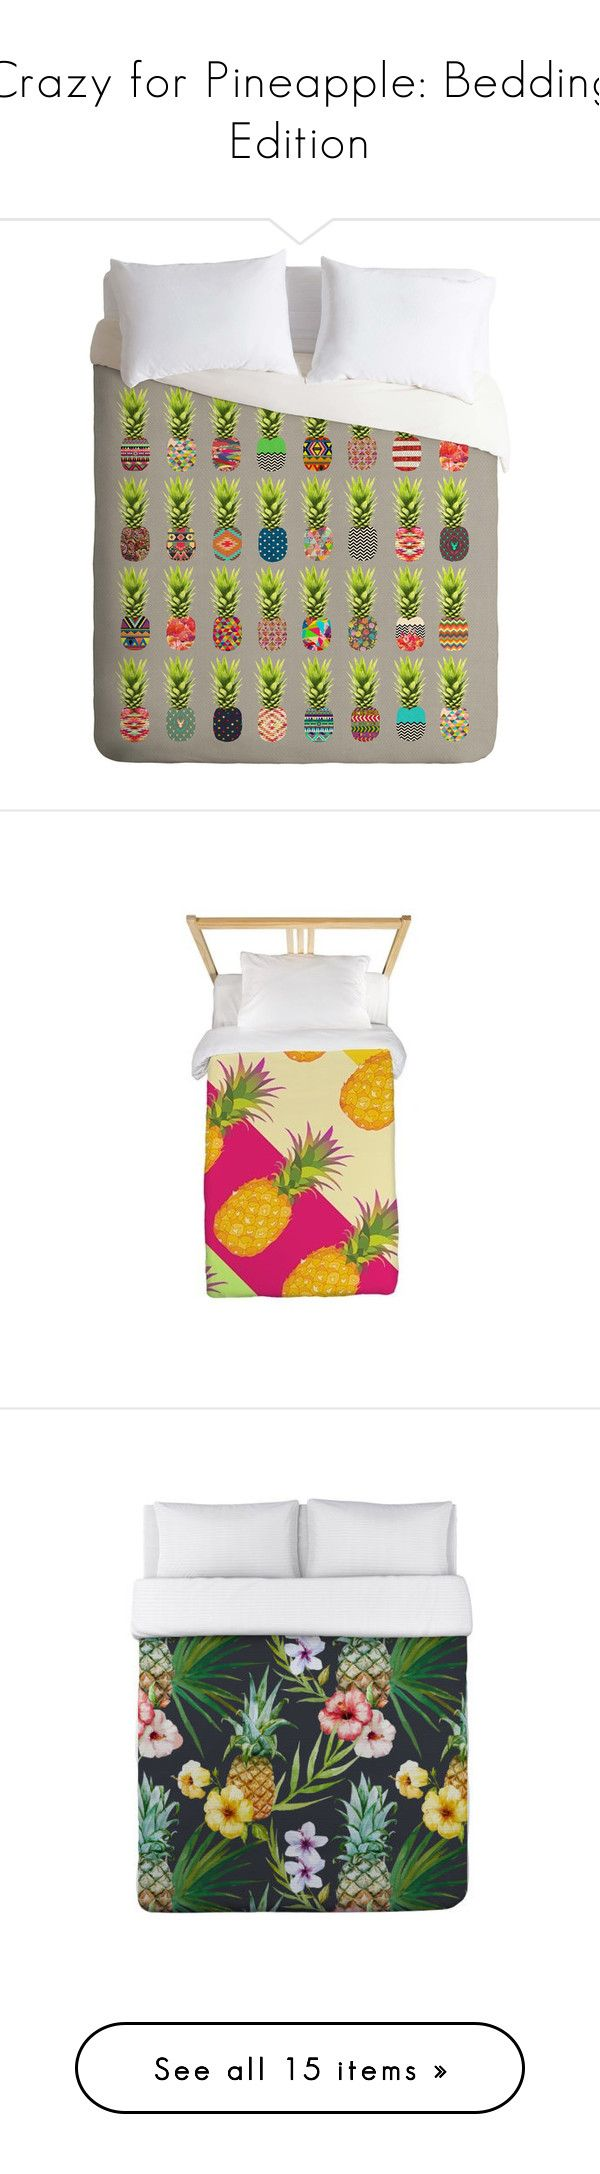 Crazy for Pineapple: Bedding Edition by polyvore-editorial on Polyvore featuring pineapplebedding, home, bed & bath, bedding, duvet covers, lightweight bedding, green bedding, king bed linens, king size bedding and king size bed linens